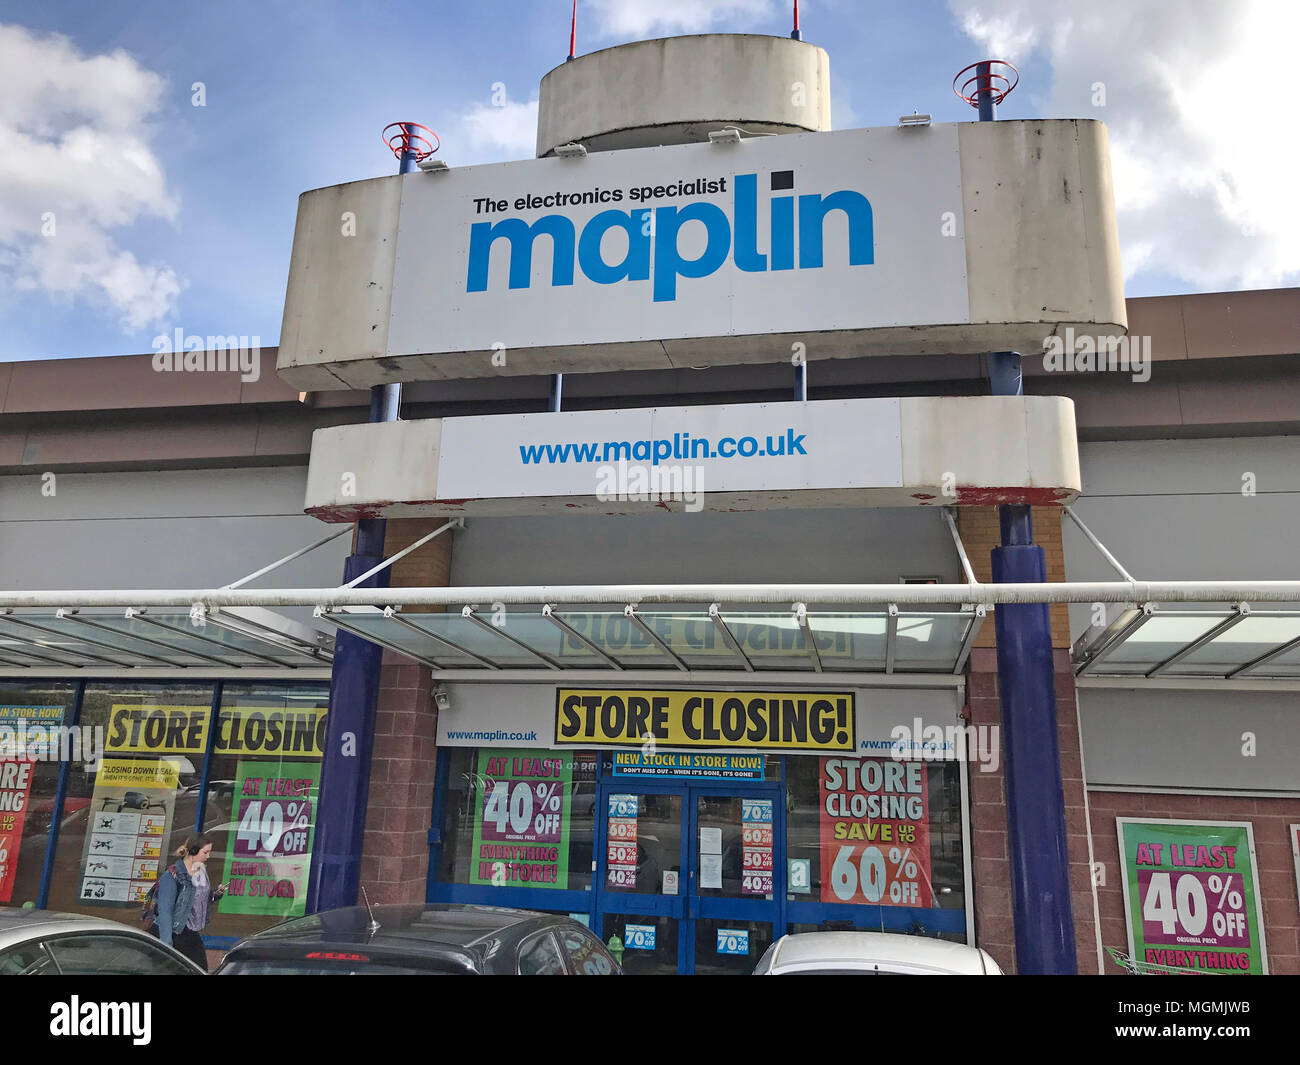 Maplins Warrington Store Closing - Stock Image